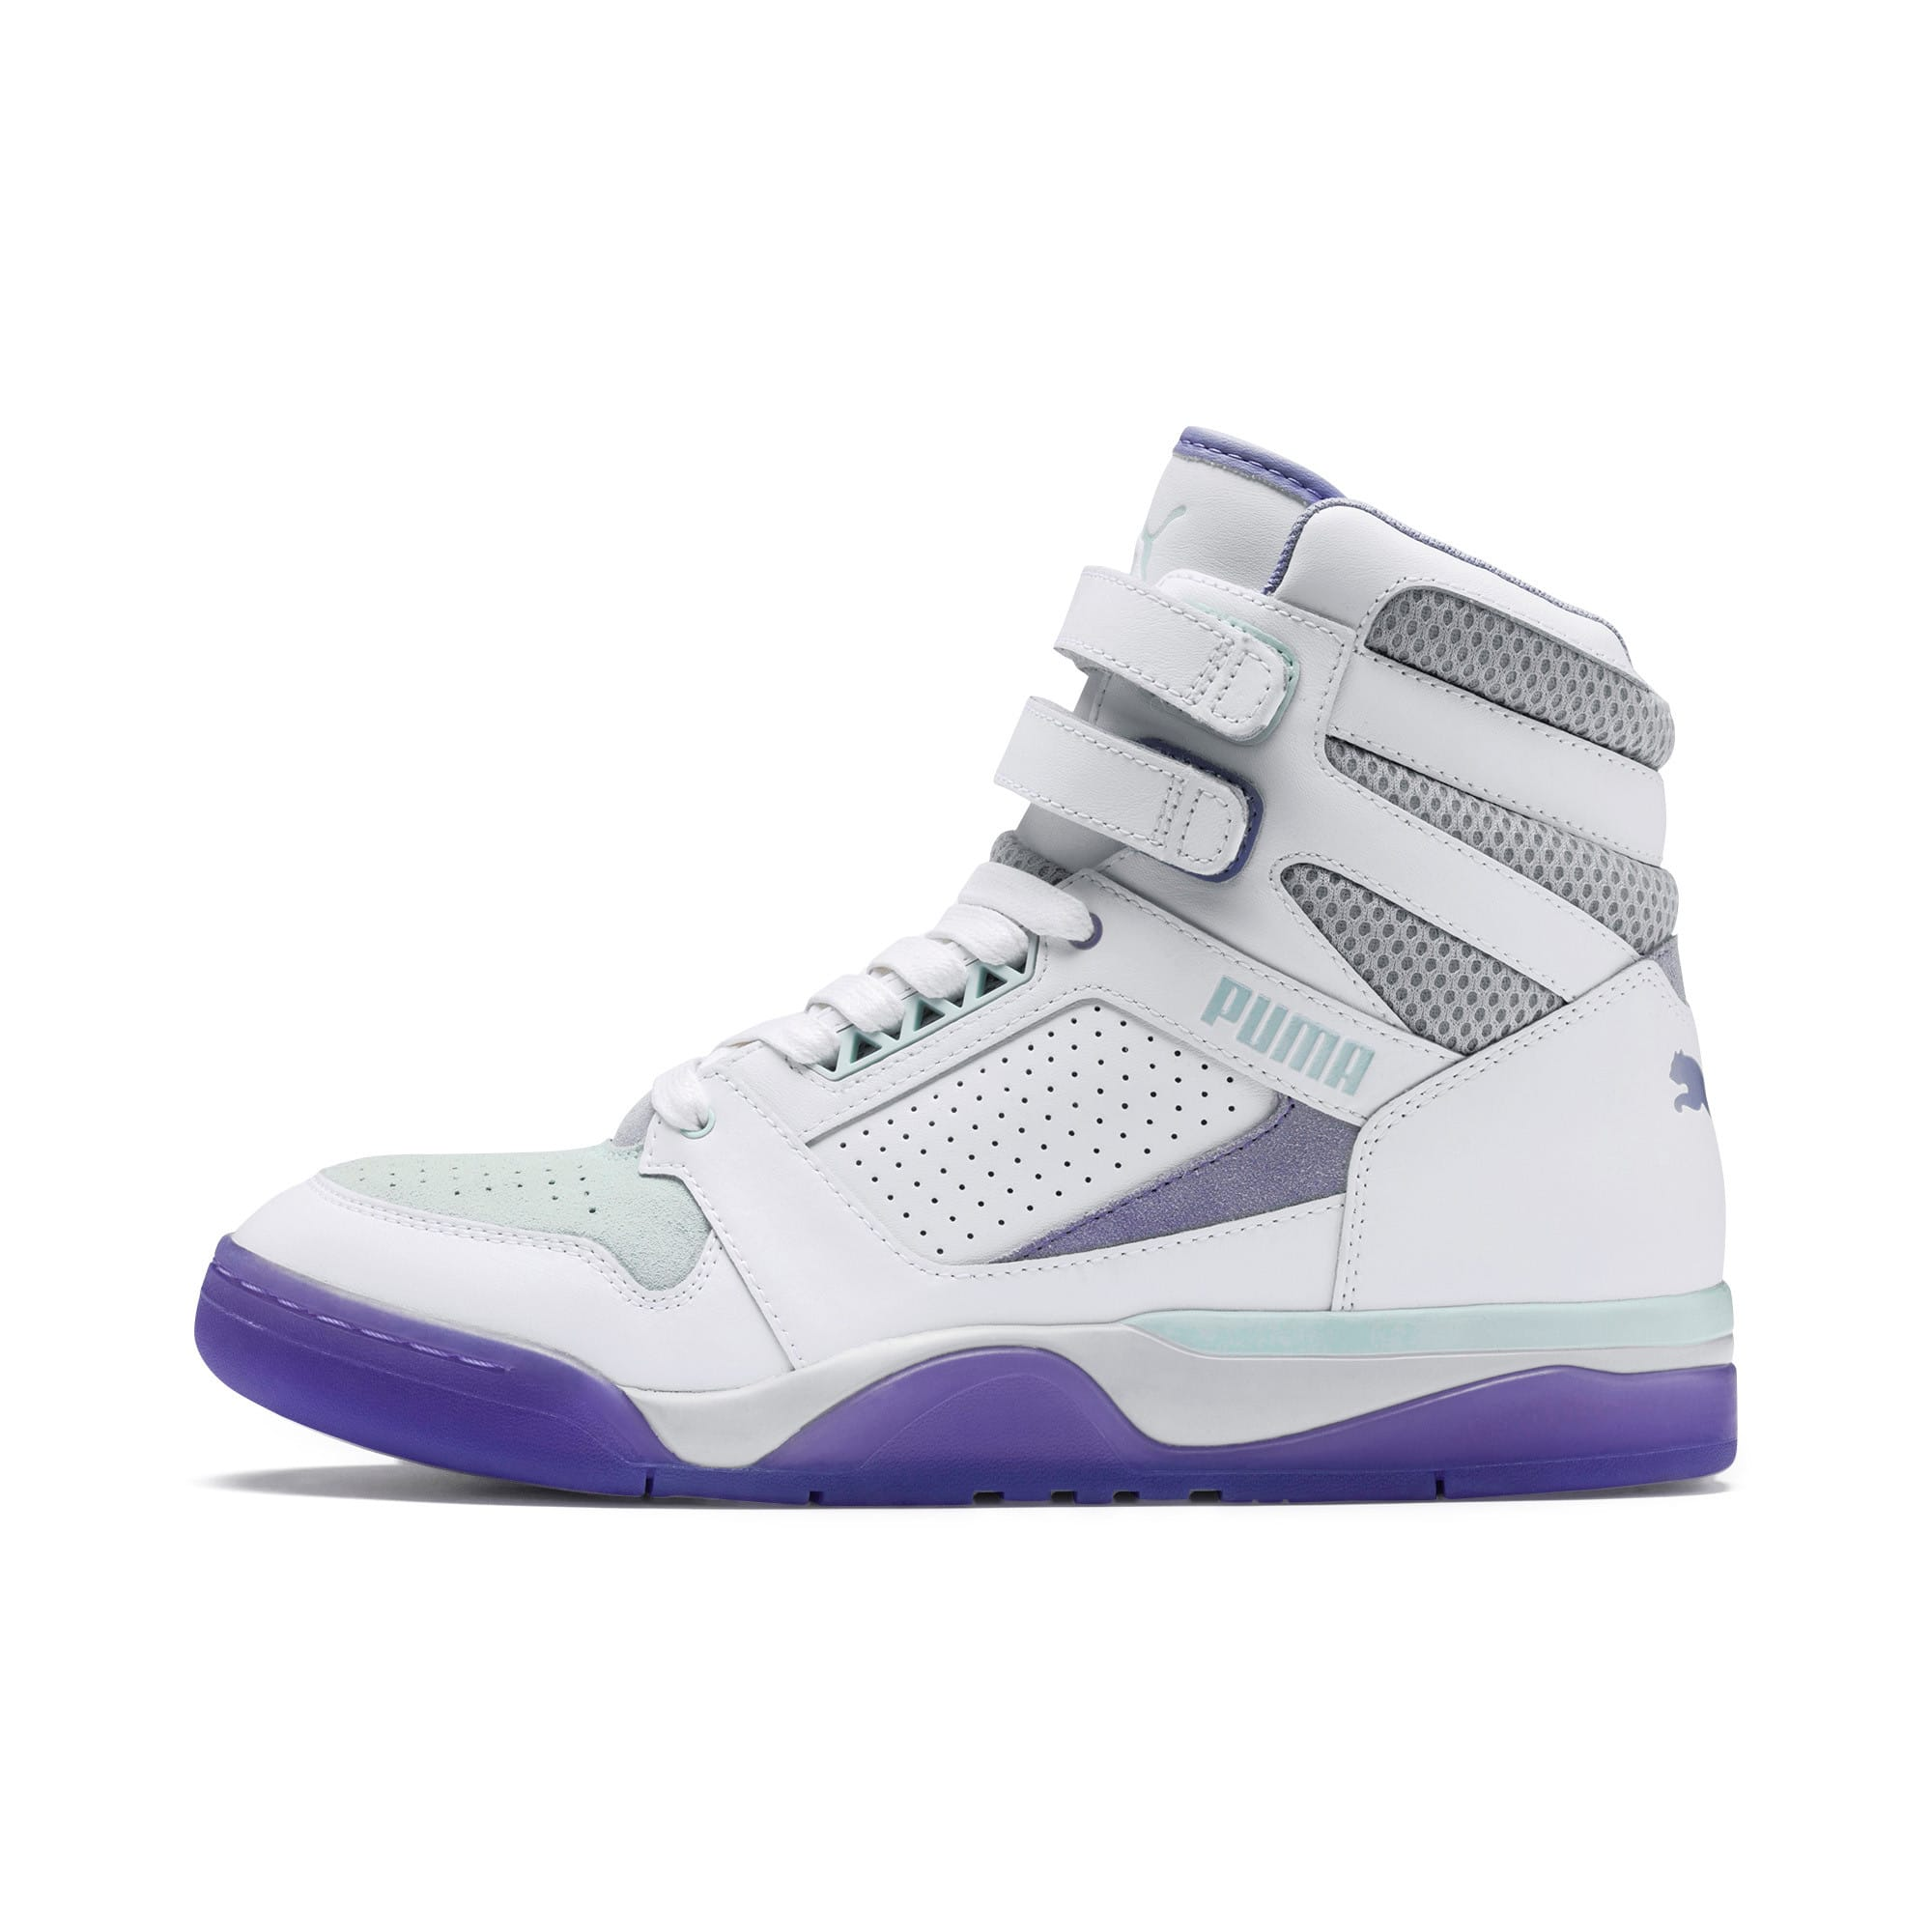 Thumbnail 1 of Palace Guard Mid Easter Sneakers, PWht-Dandelion-Prism Violet, medium